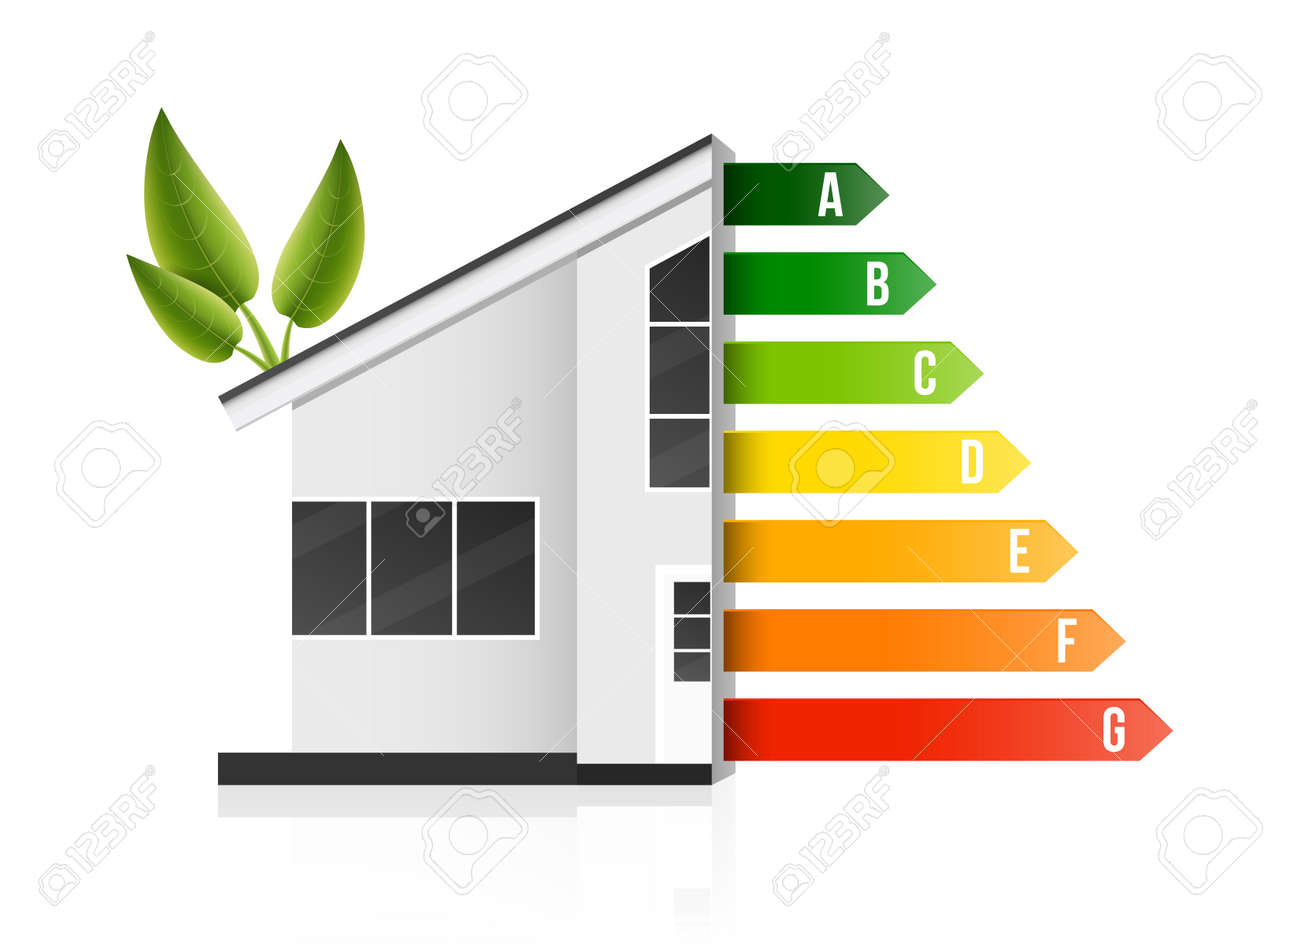 Creative illustration of home energy efficiency rating isolated on background. Art design smart eco house improvement template. Abstract concept graphic certification system element. - 121105806